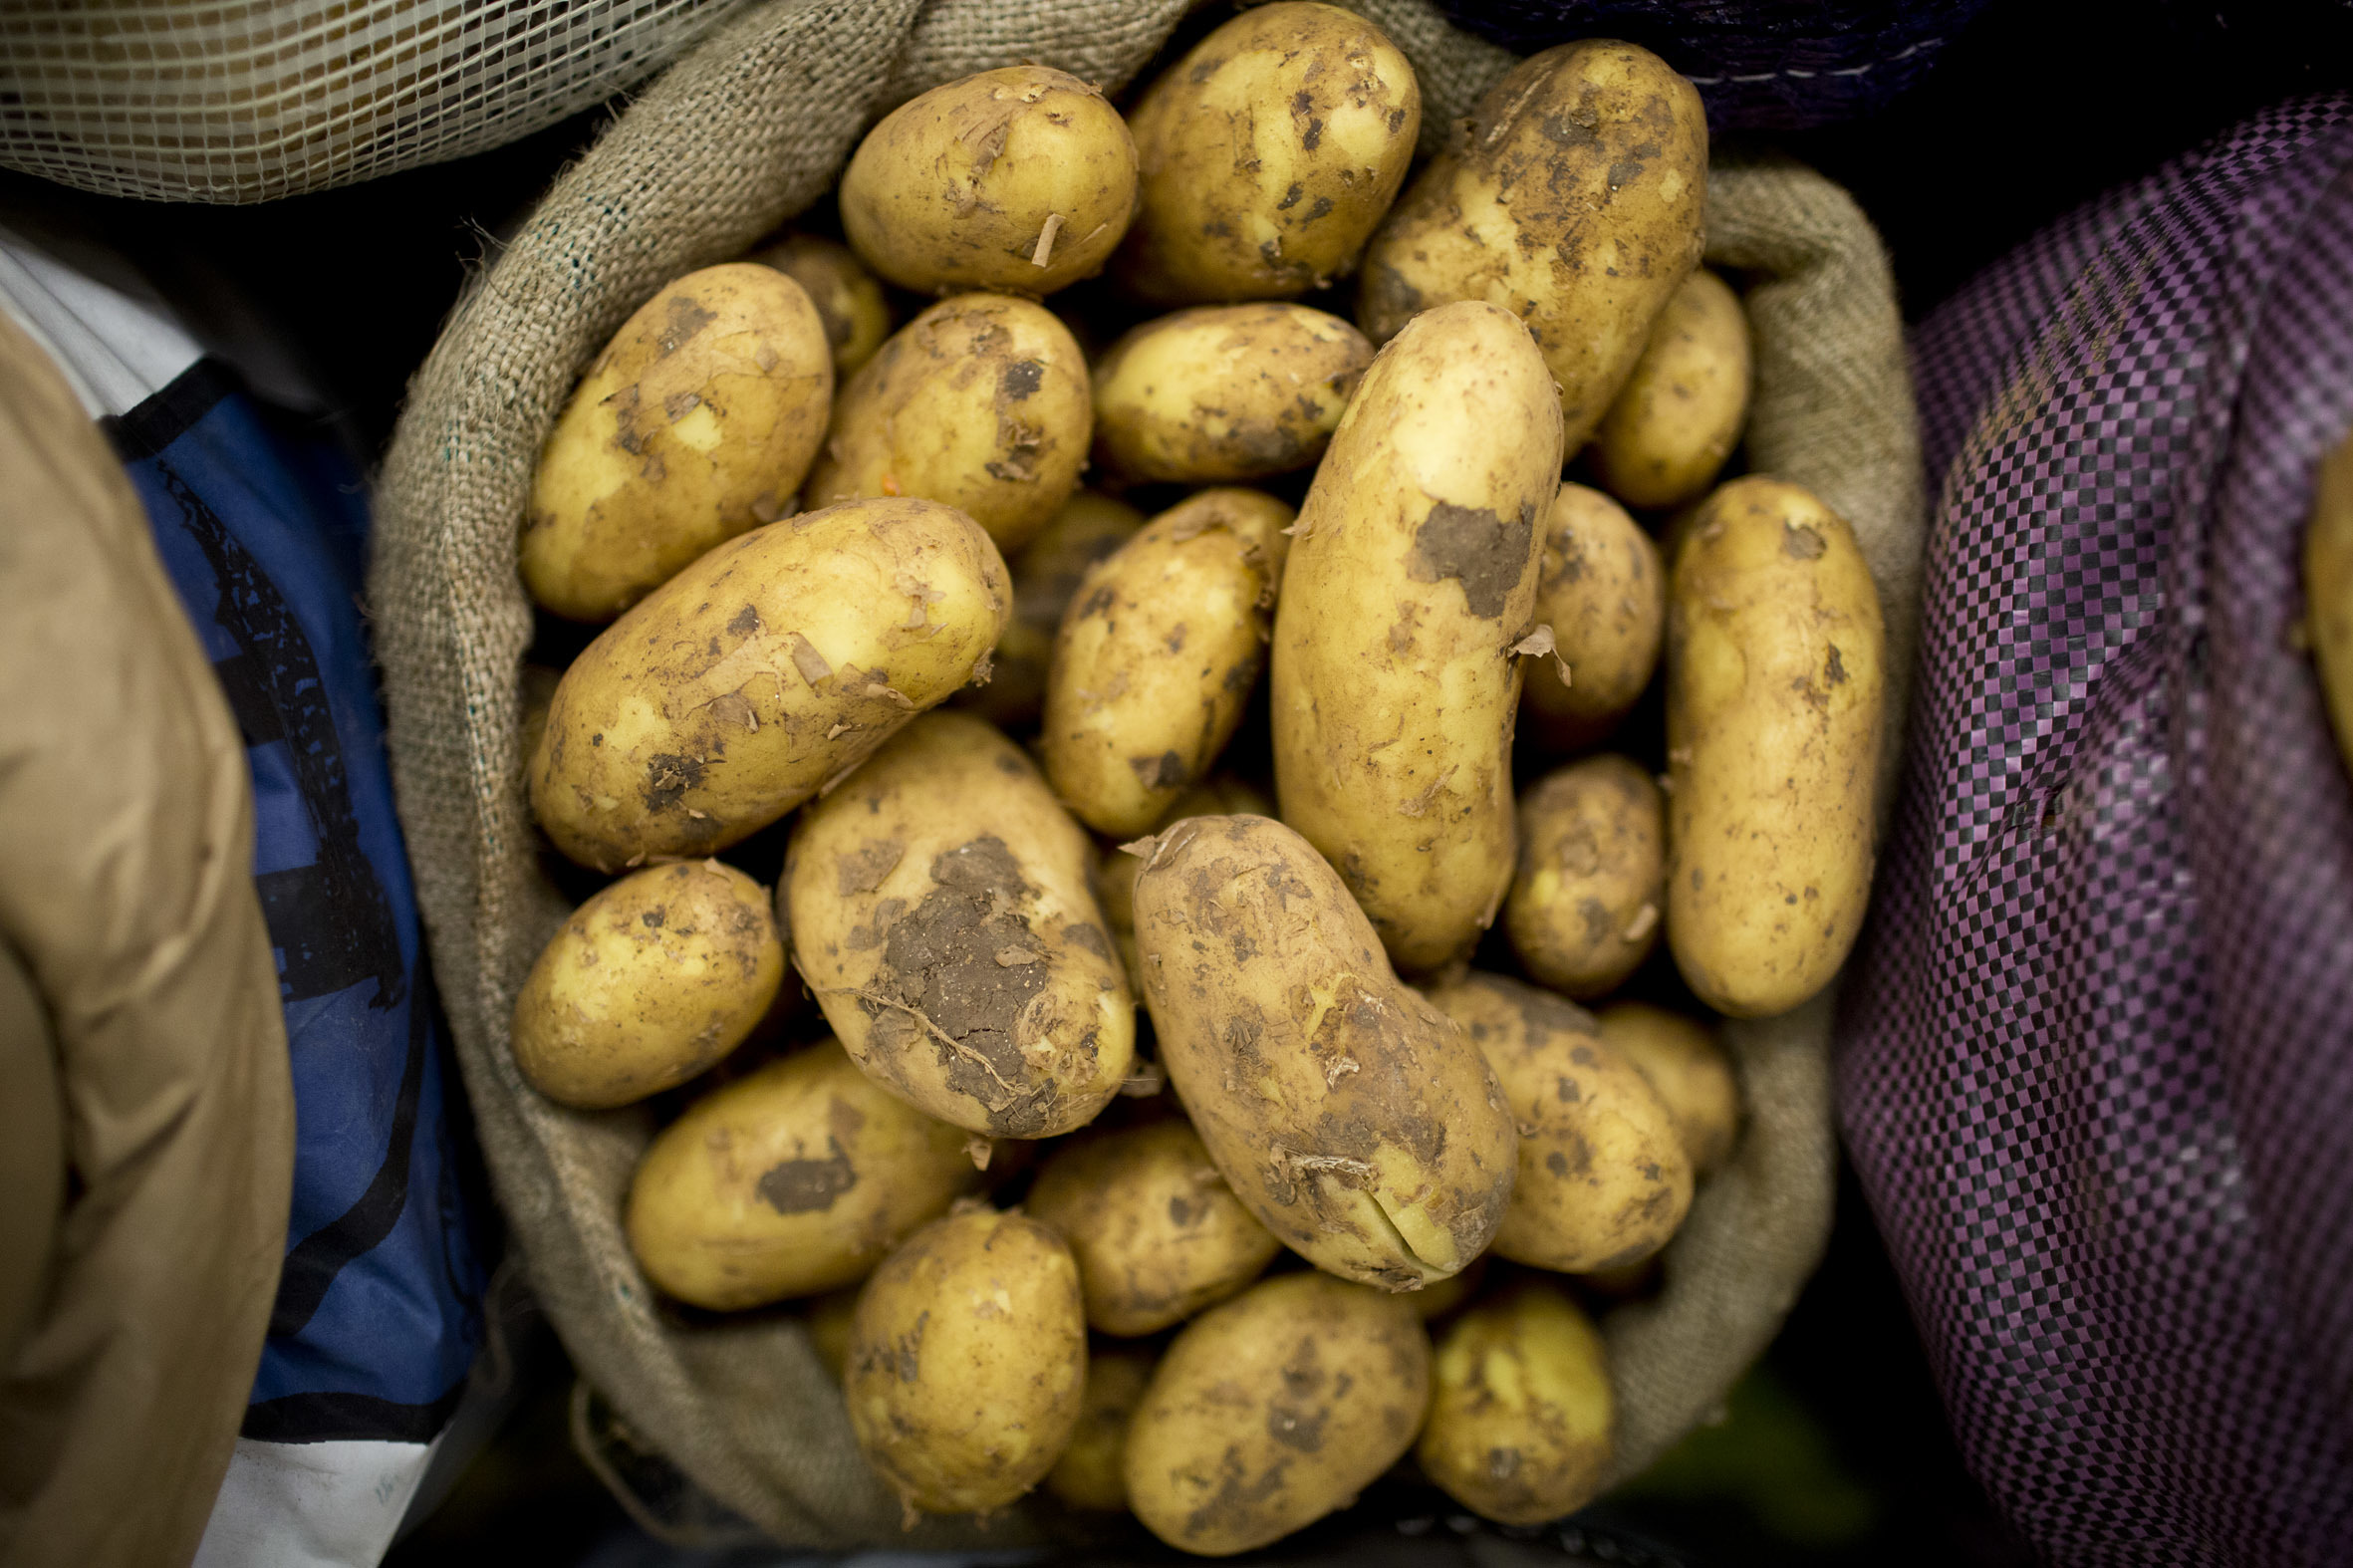 fruit-and-vegetable-market-report-march-2014-cyprus-potatoes.jpg?mtime=20170922112627#asset:11324